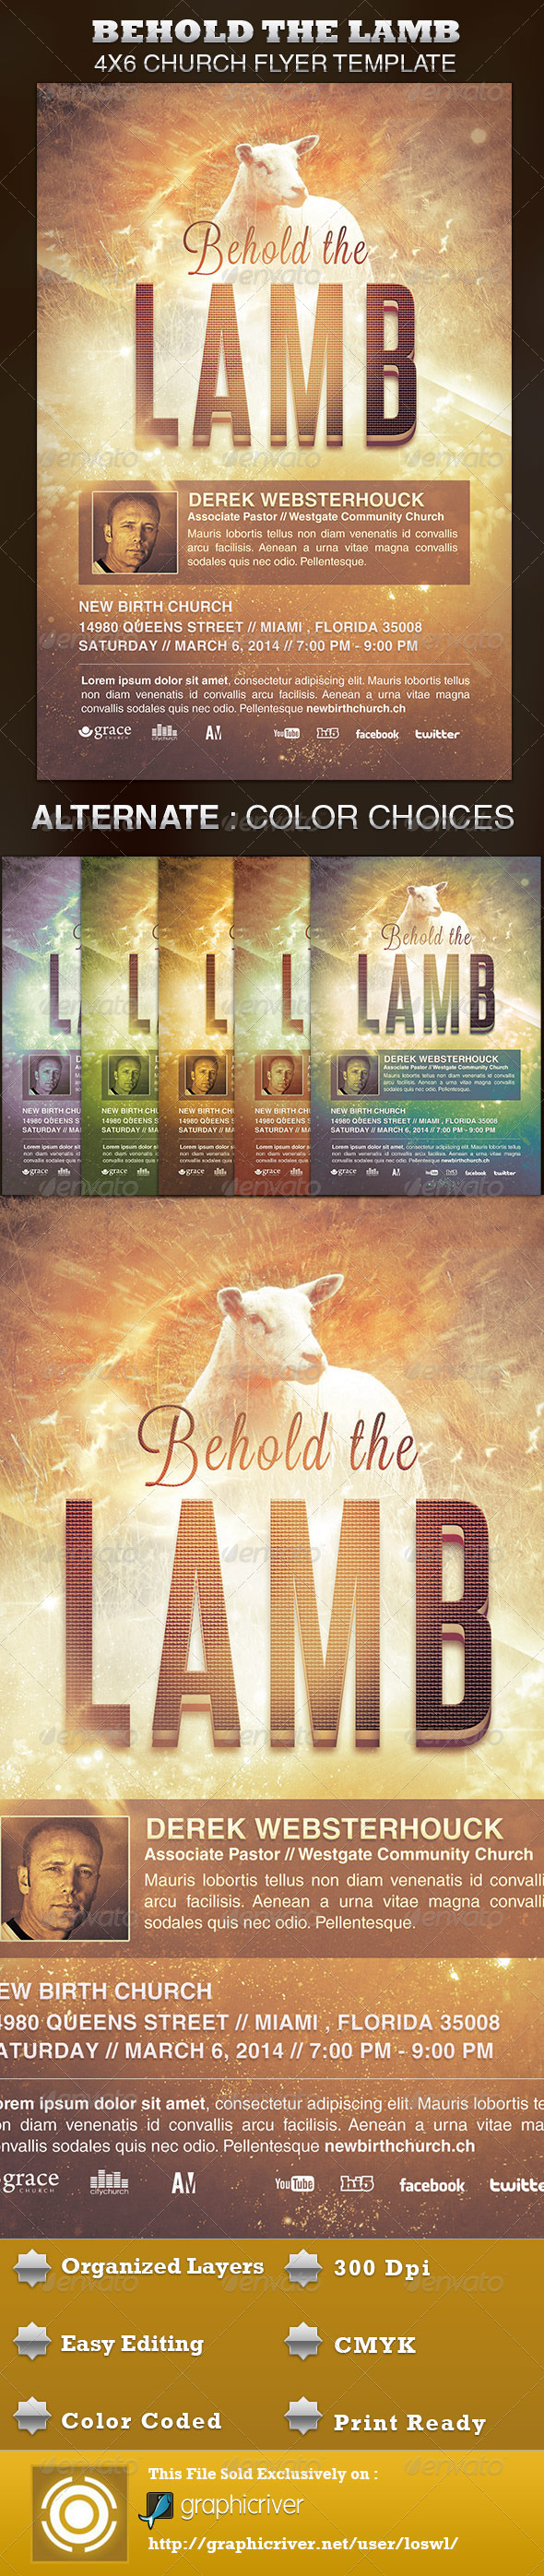 Behold the Lamb Church Flyer Template - Church Flyers